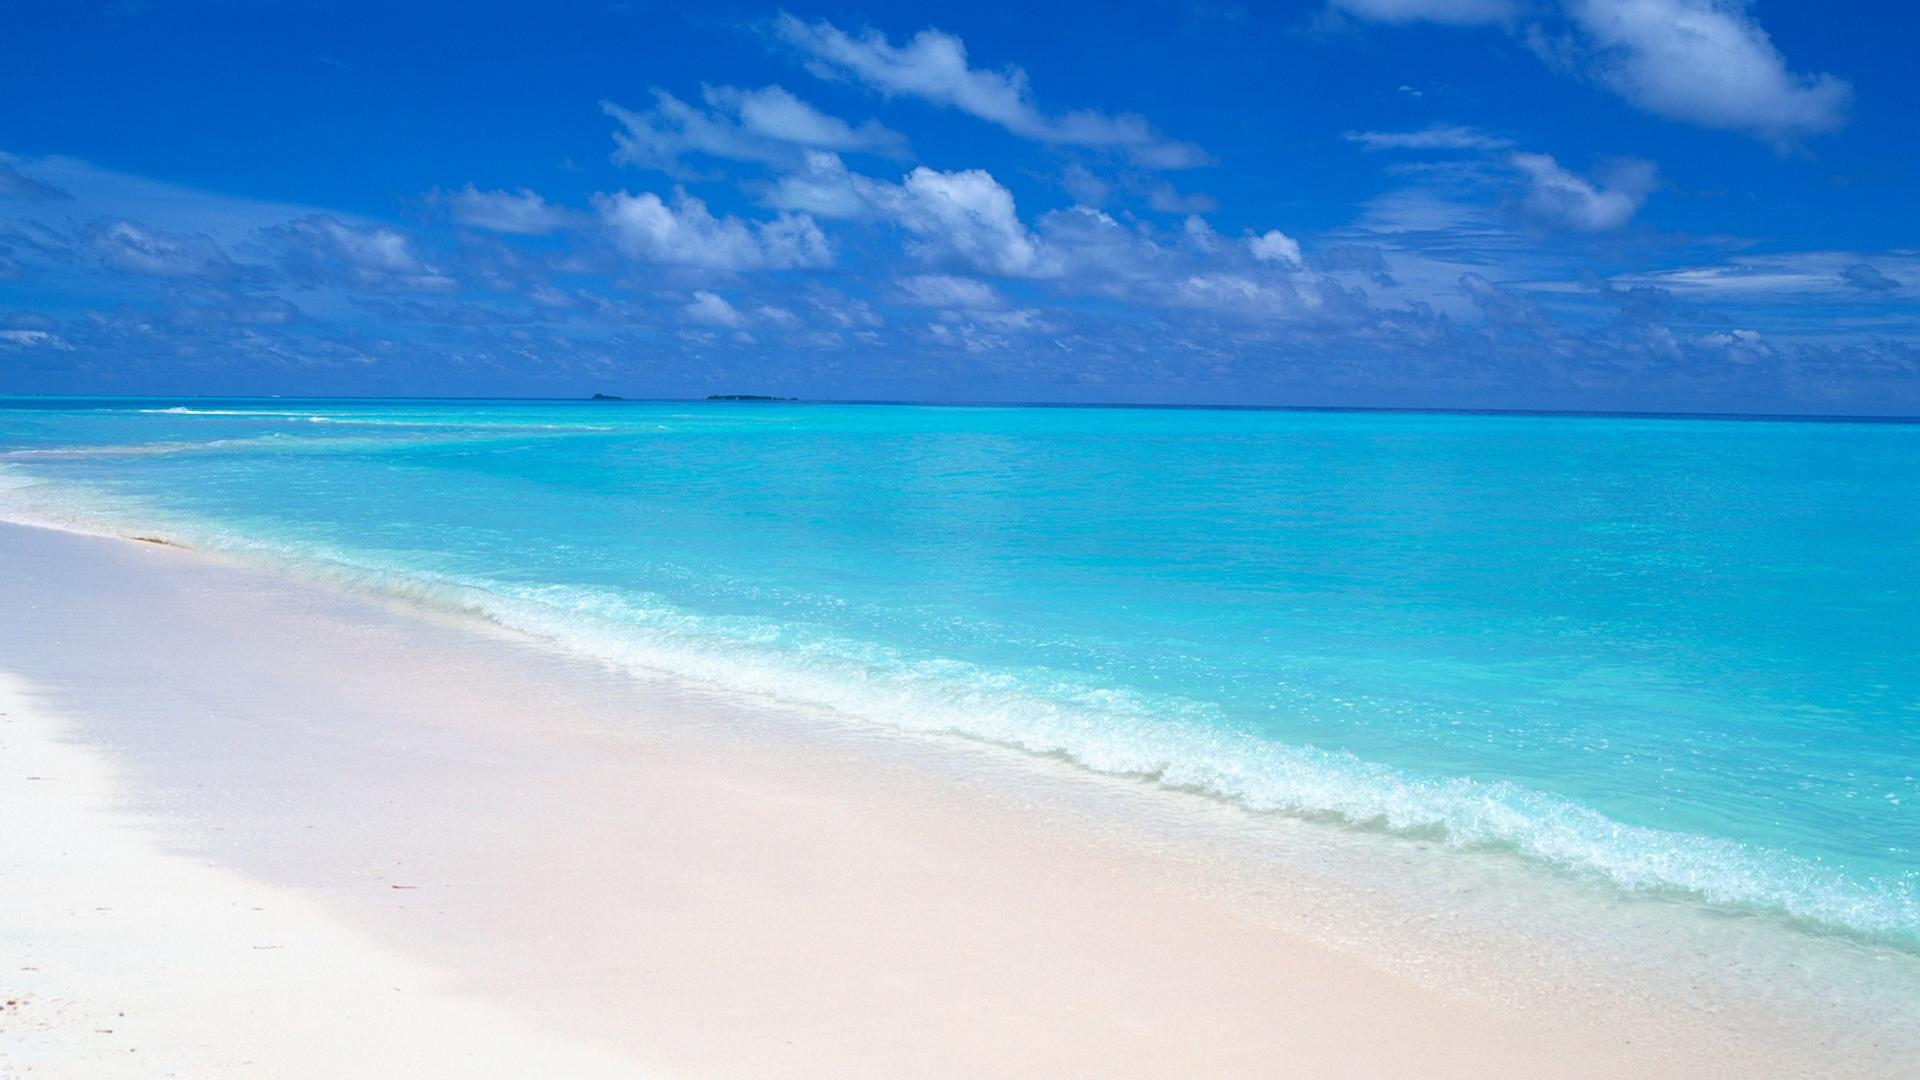 Maldives white beach HD Wallpapers 1920x1080 Beach Wallpapers 1920x1080